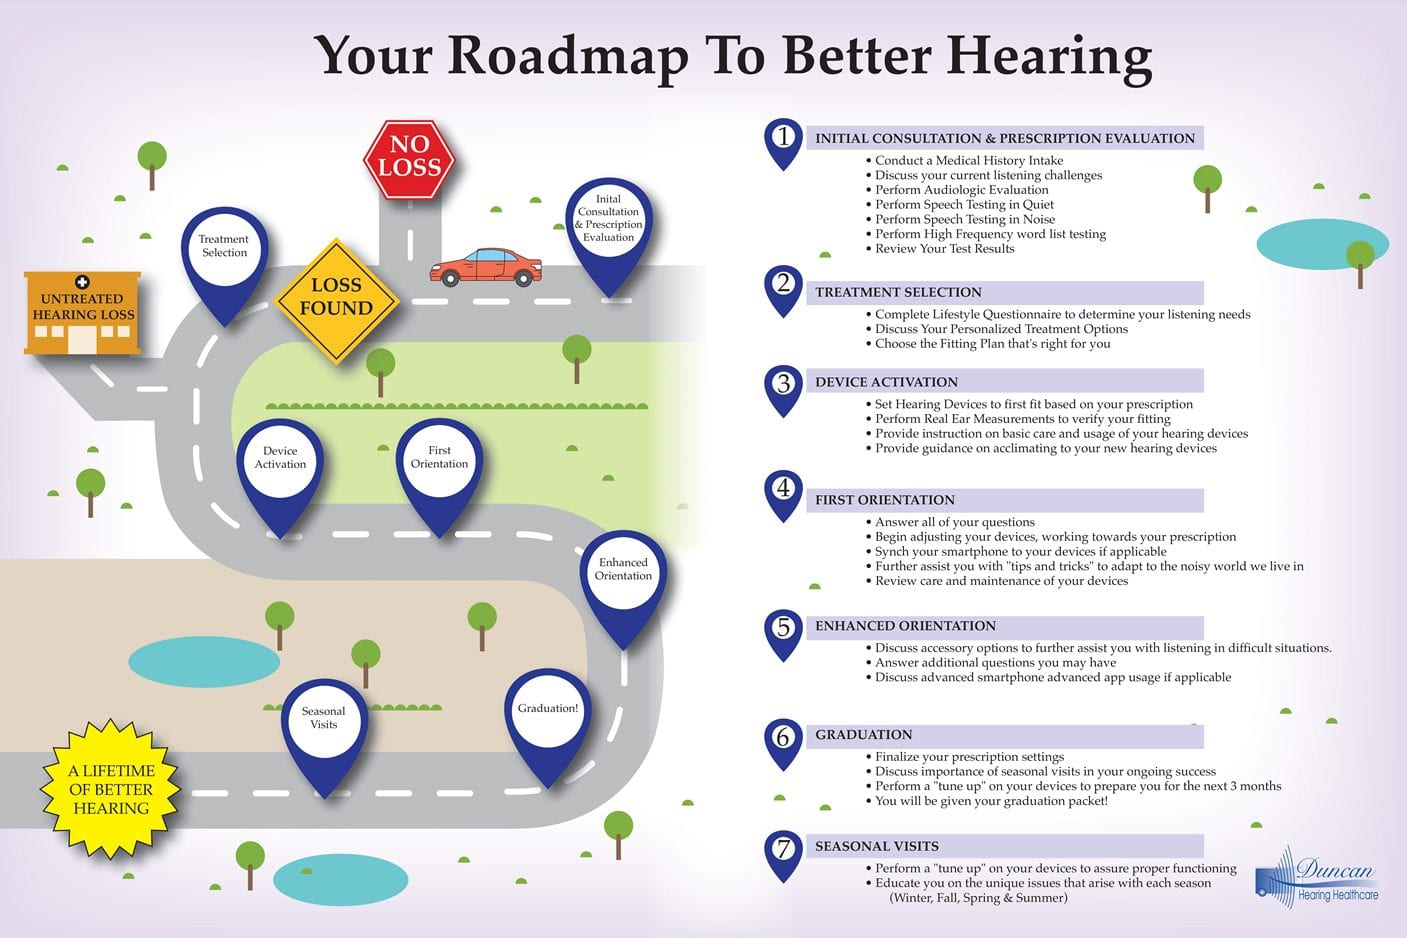 Roadmap to better hearing